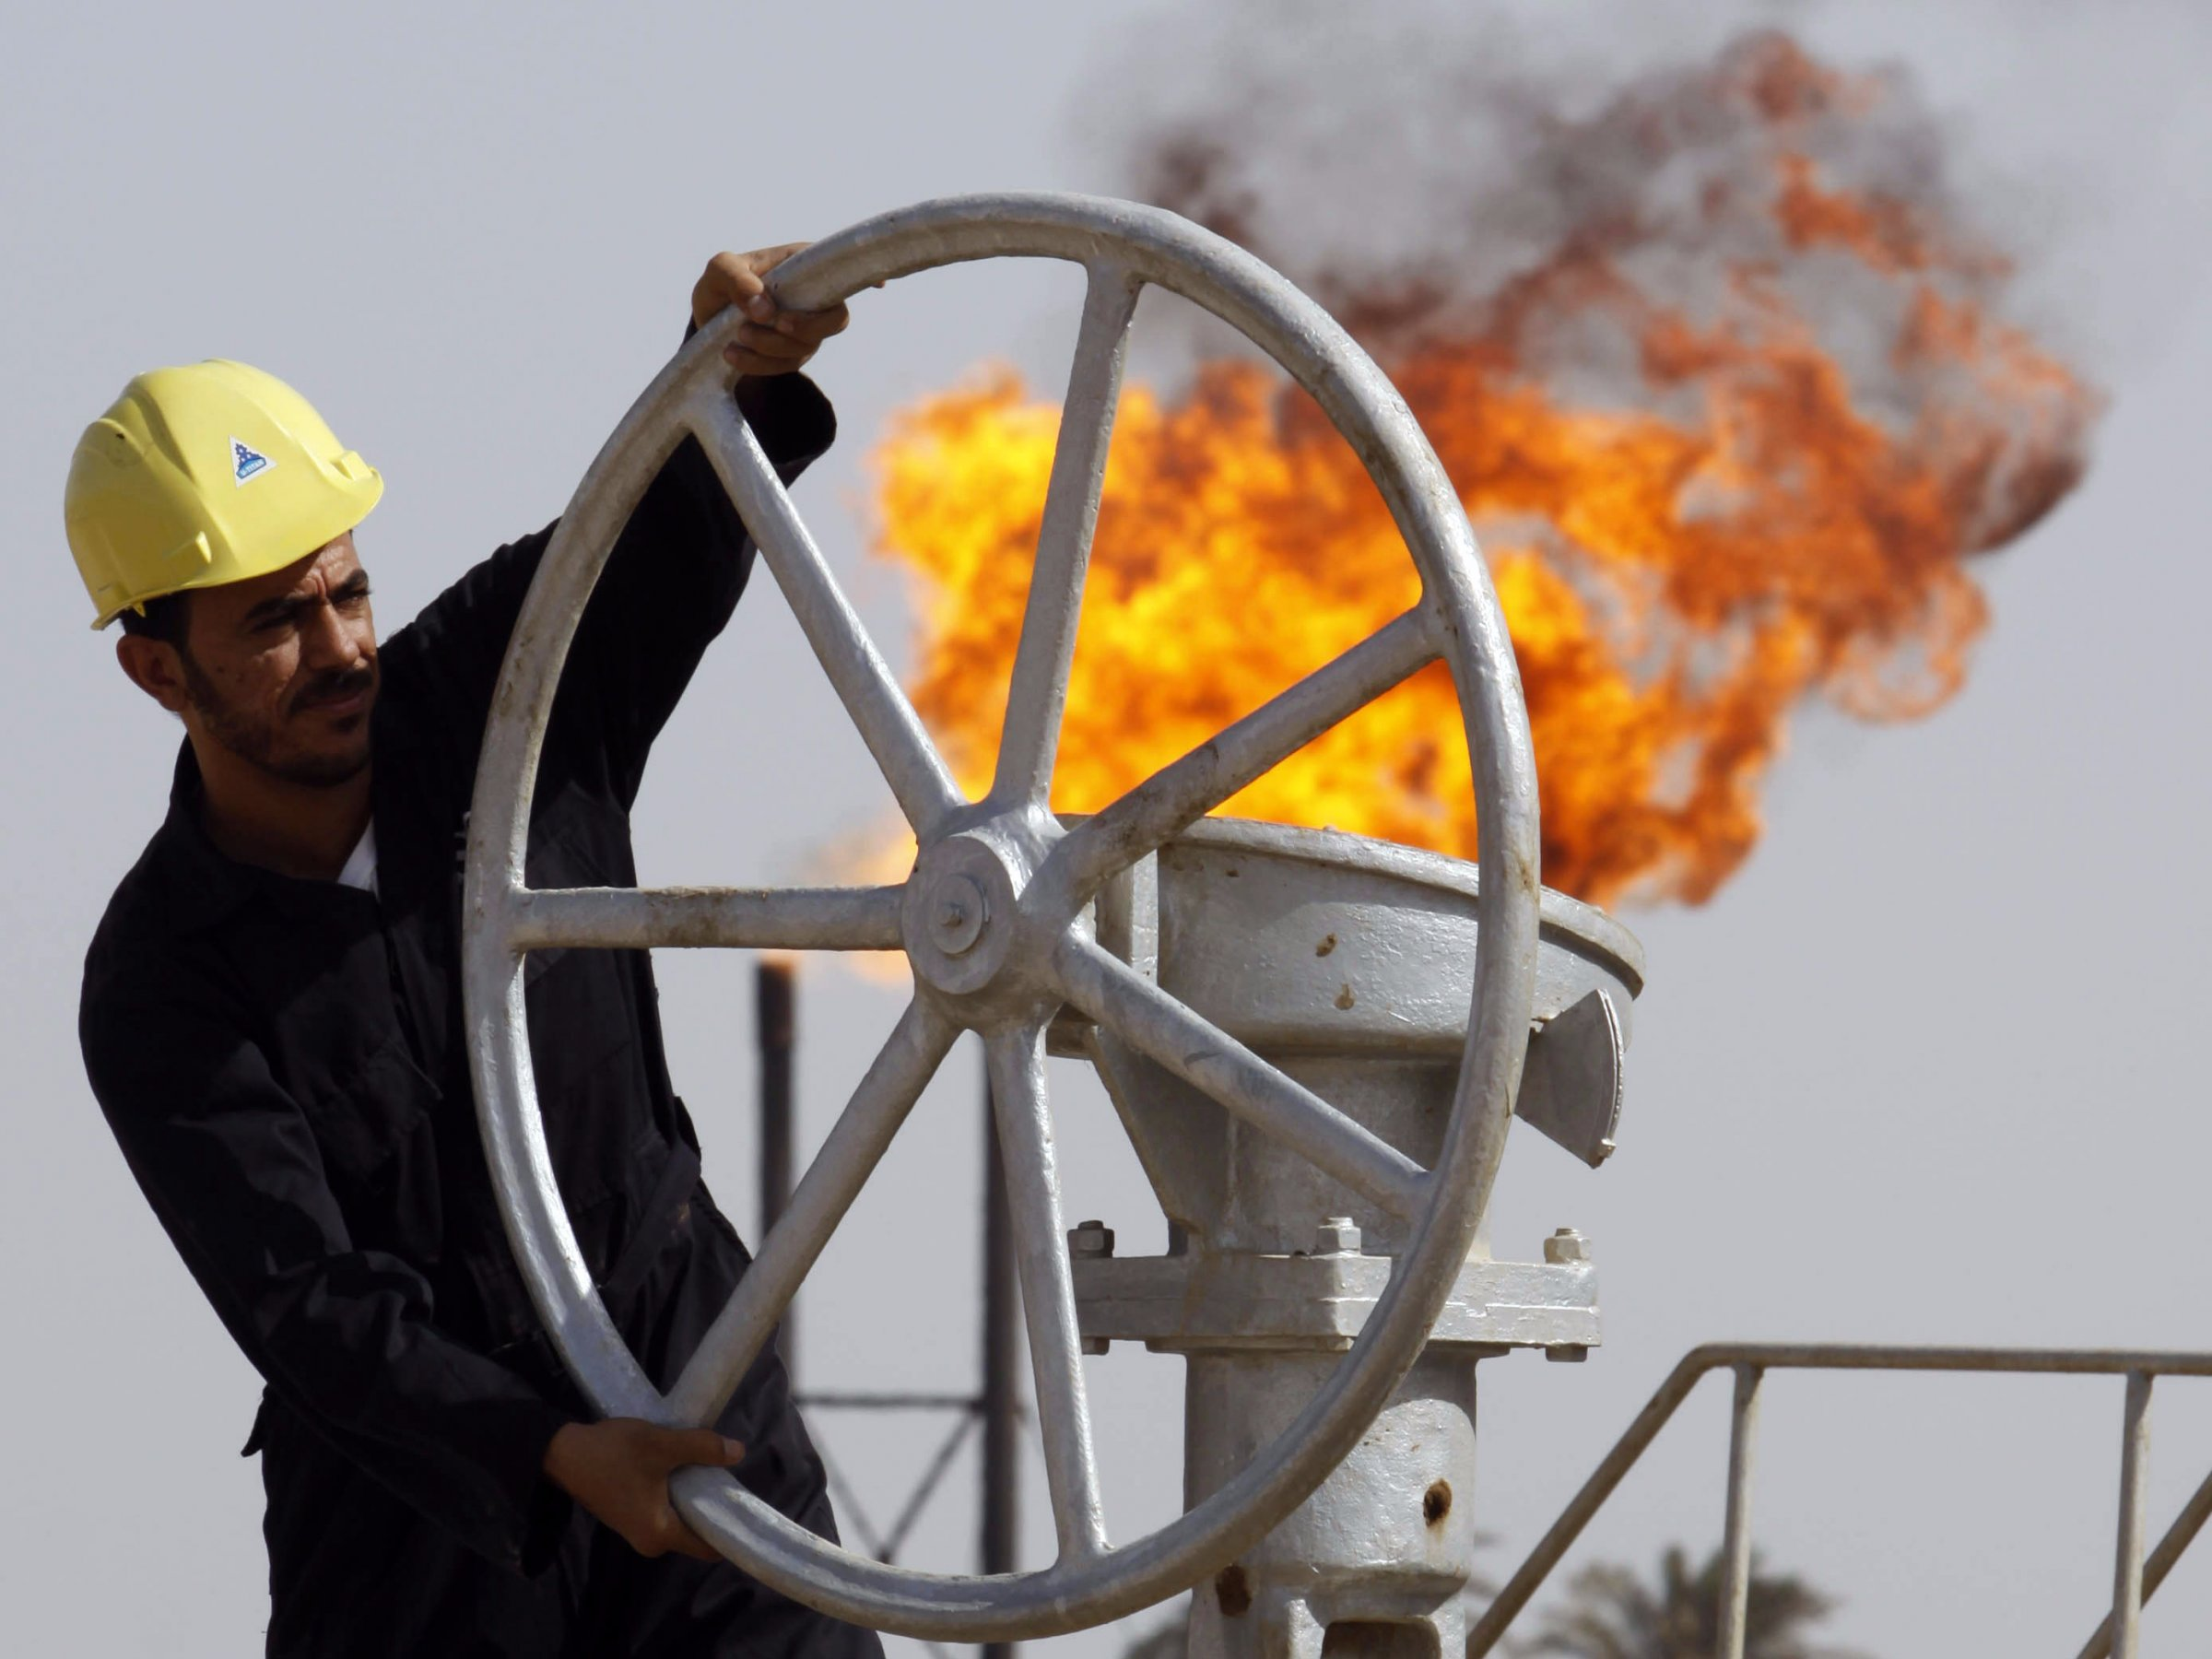 oil worker flame fire